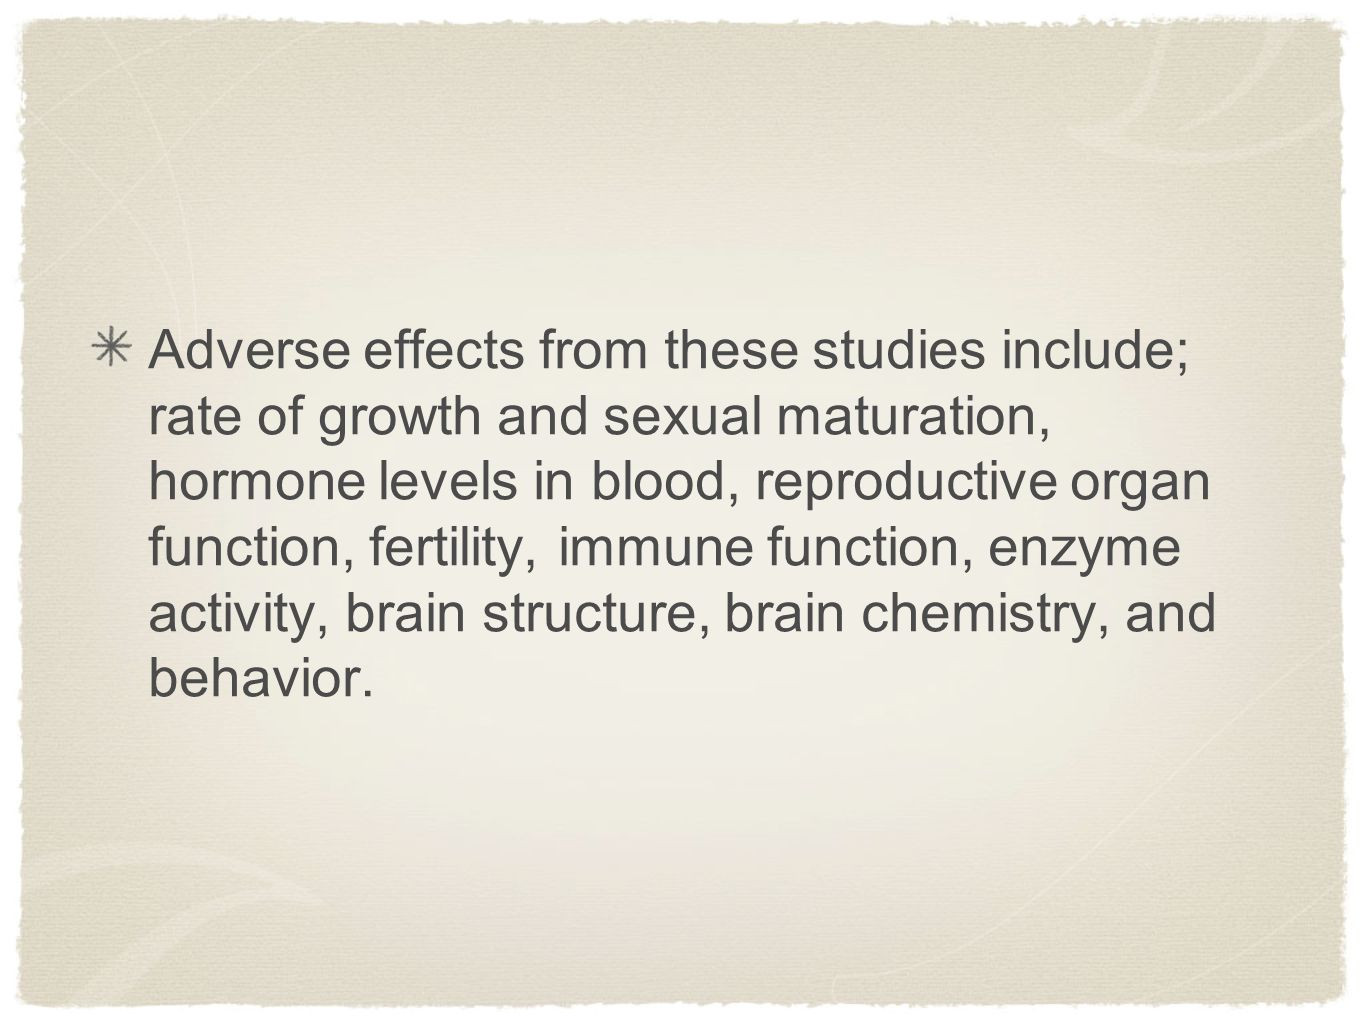 Adverse effects from these studies include; rate of growth and sexual maturation, hormone levels in blood, reproductive organ function, fertility, immune function, enzyme activity, brain structure, brain chemistry, and behavior.